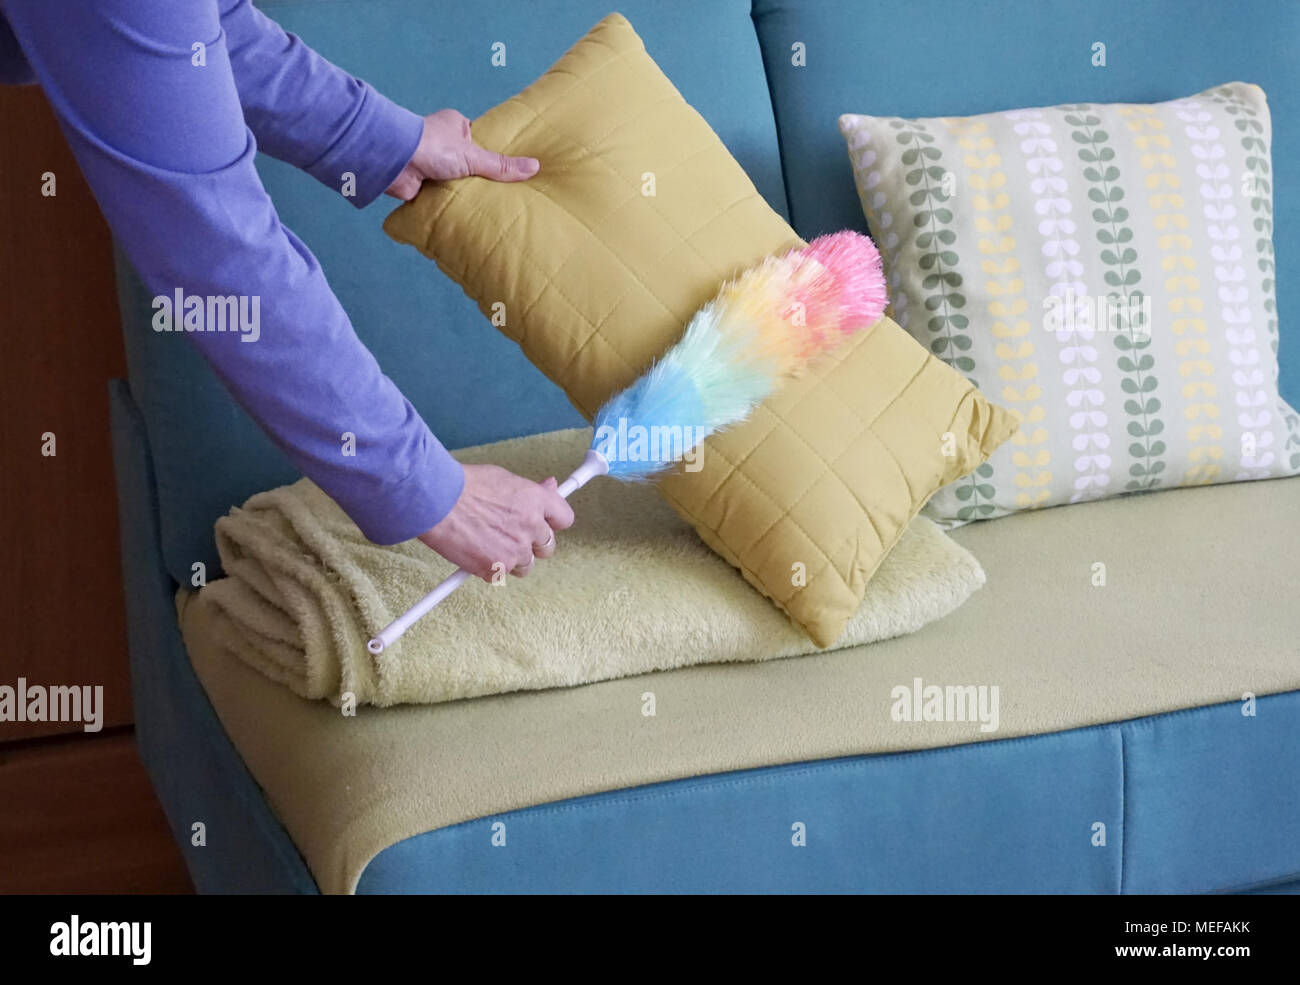 Woman Hands With Dust Cleaner Cleaning Dust In The Living Room, Spring Cleaning  House Concept